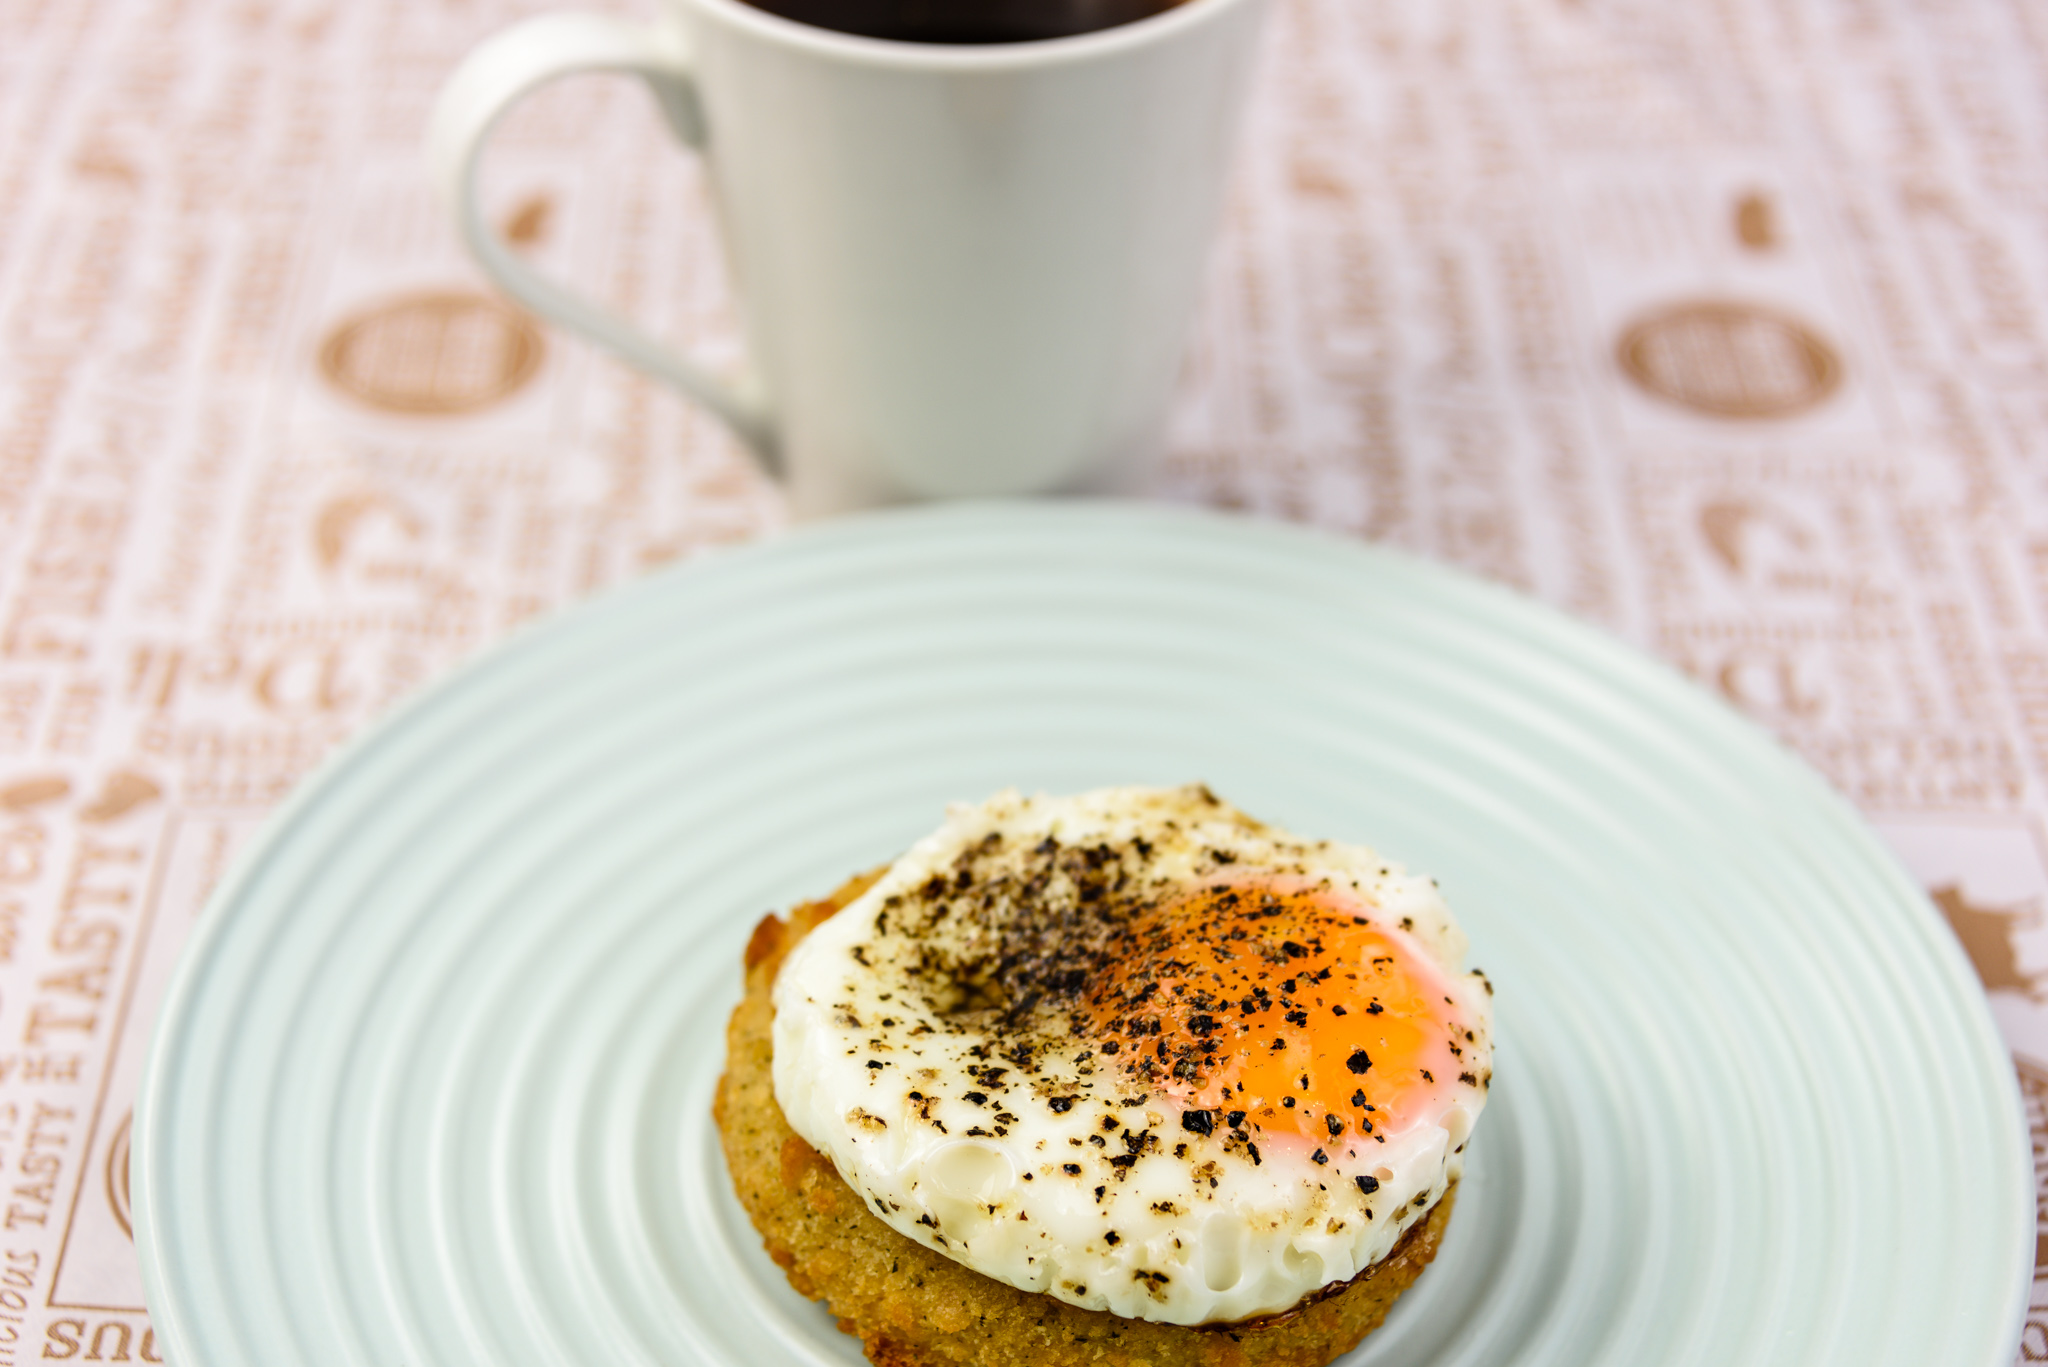 Saturday breakfast. Fried egg on a salmon rissole with coffee.